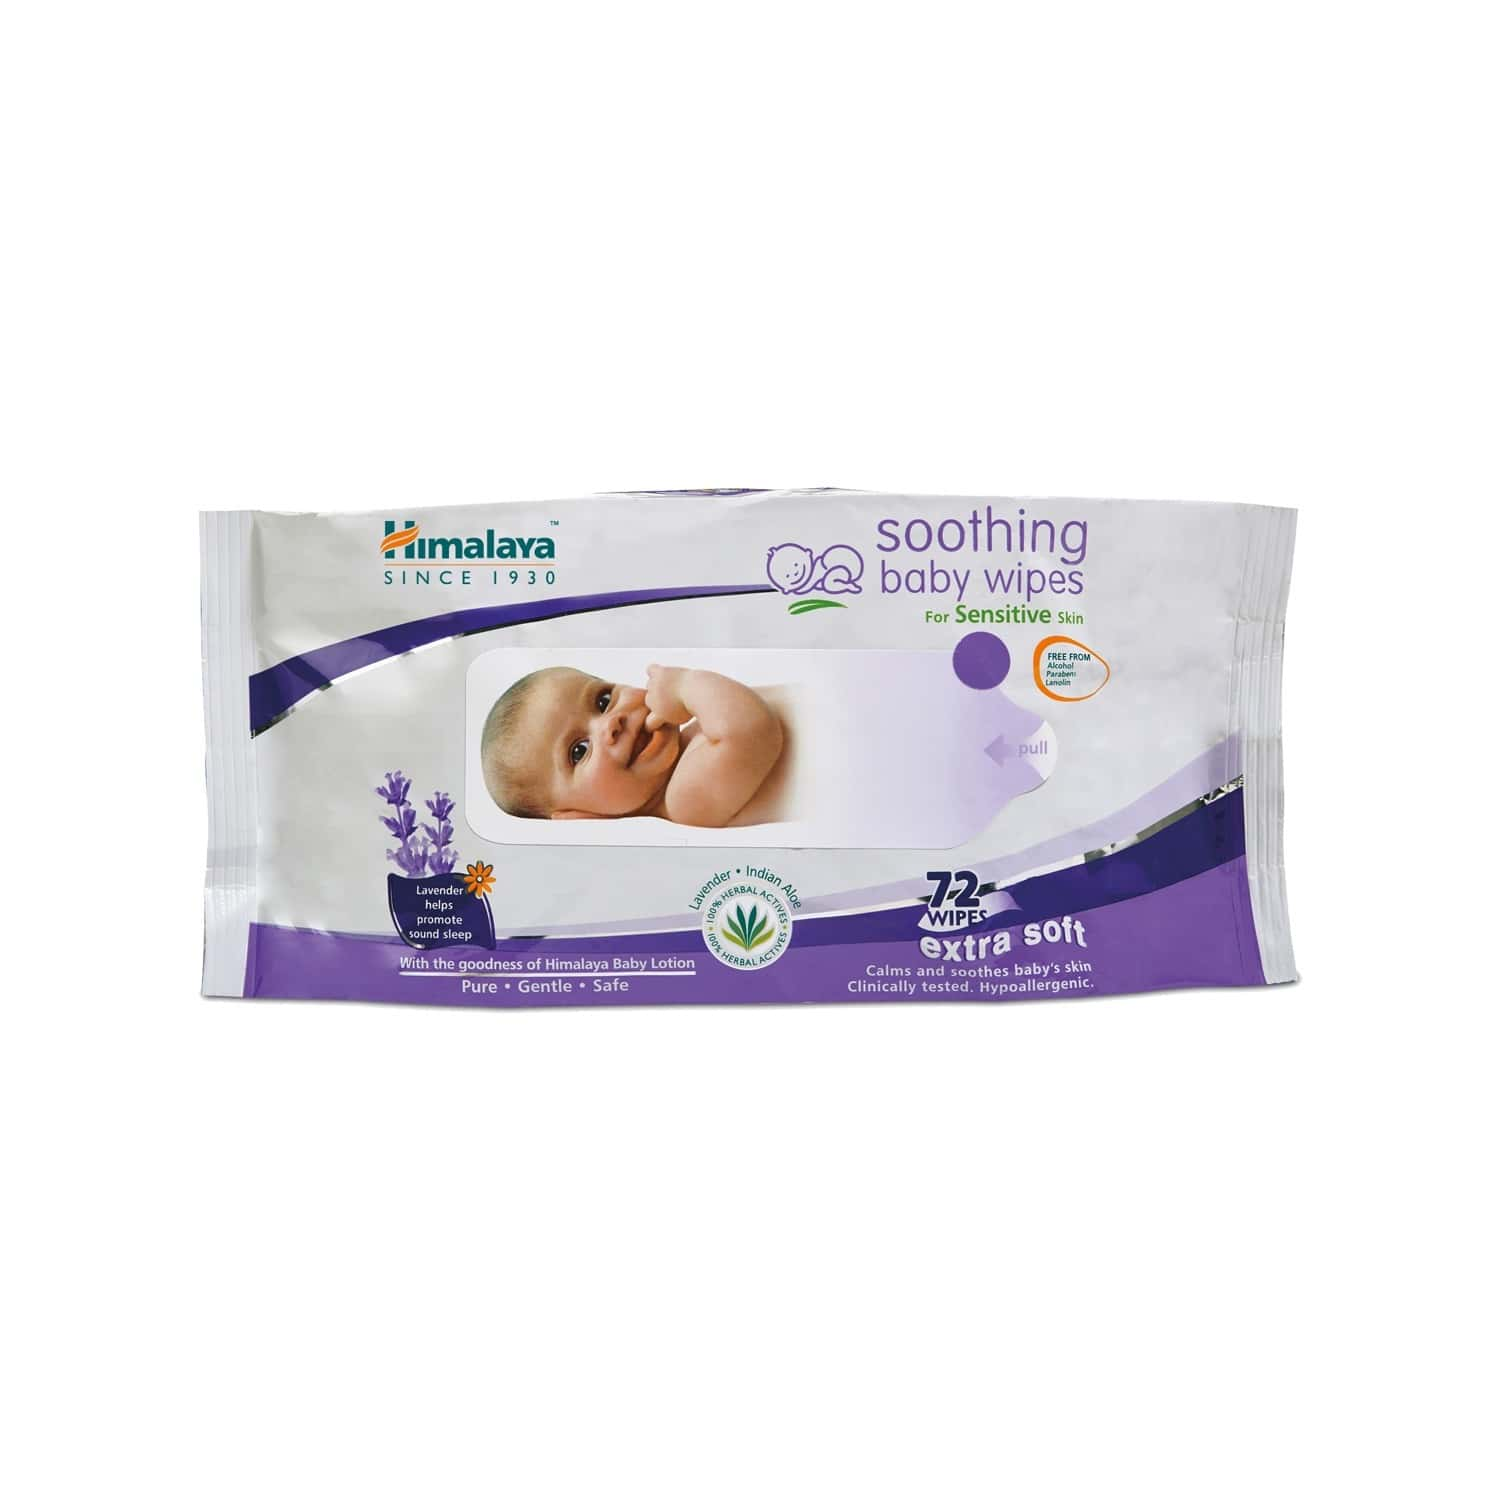 Himalaya Soothing Baby Wipes 72's